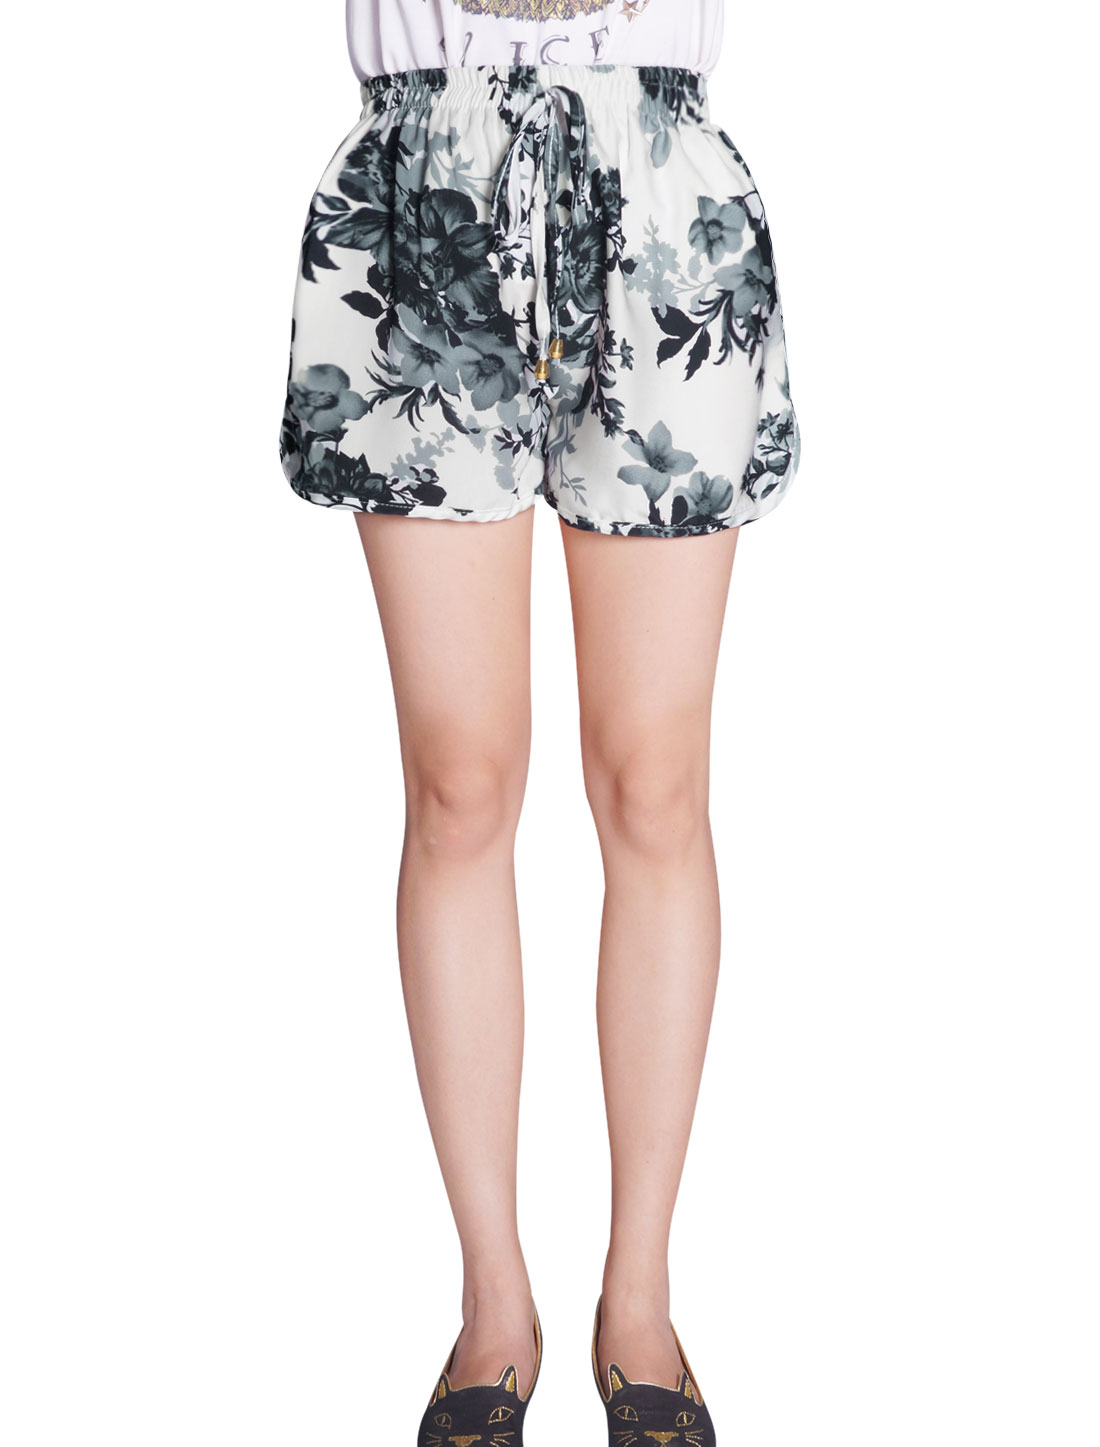 Lady Elastic Drawstring Waist Floral Prints Leisure Shorts White XS